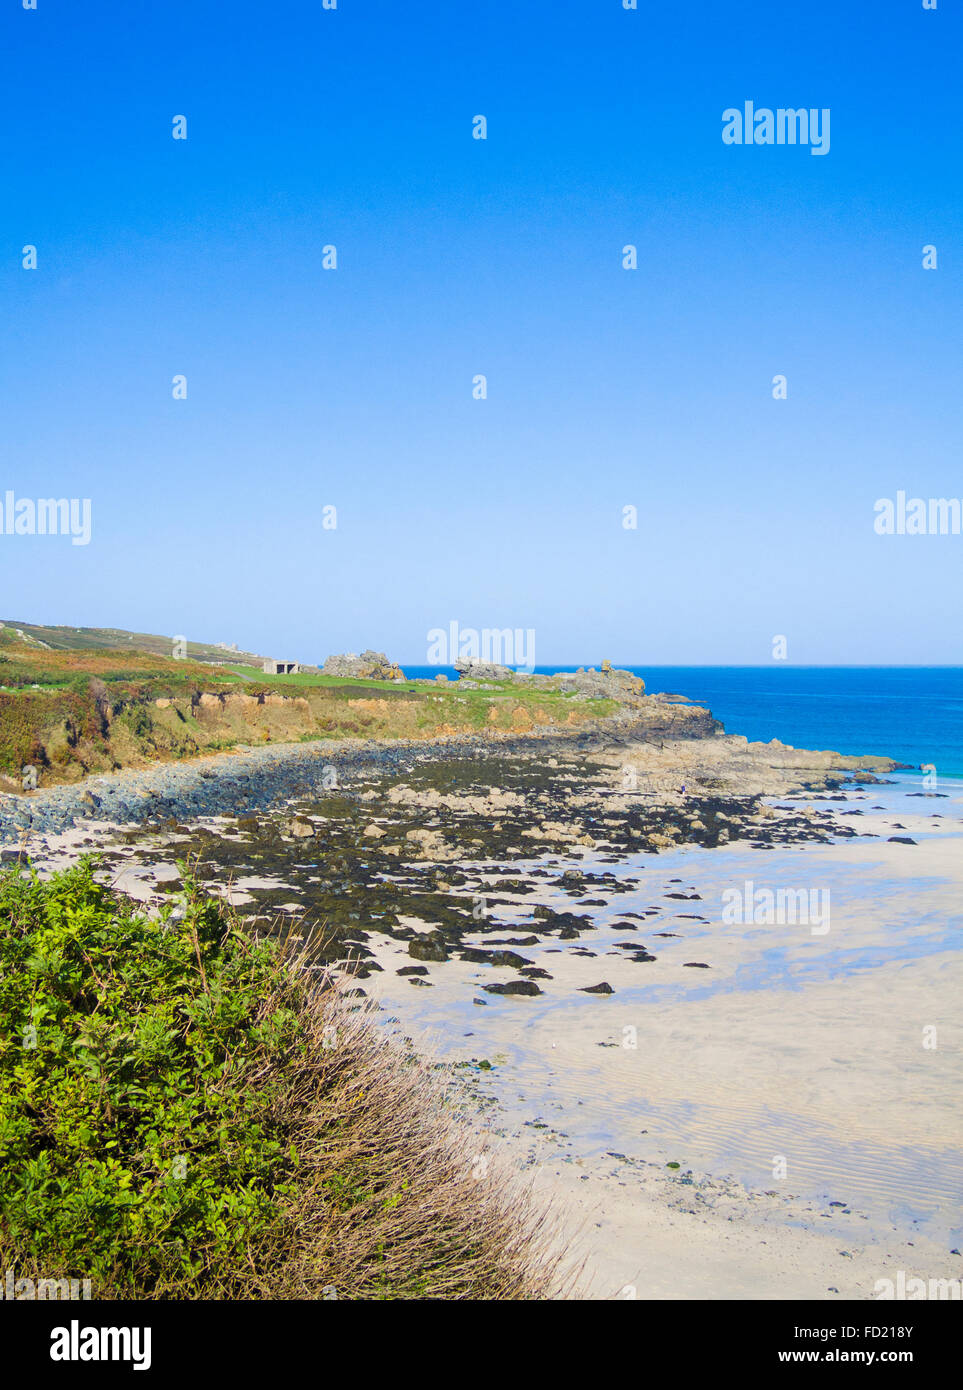 Porthmeor Beach& Carrick Du Headland, St Ives, Cornwall, England, UK in Summer - Stock Image